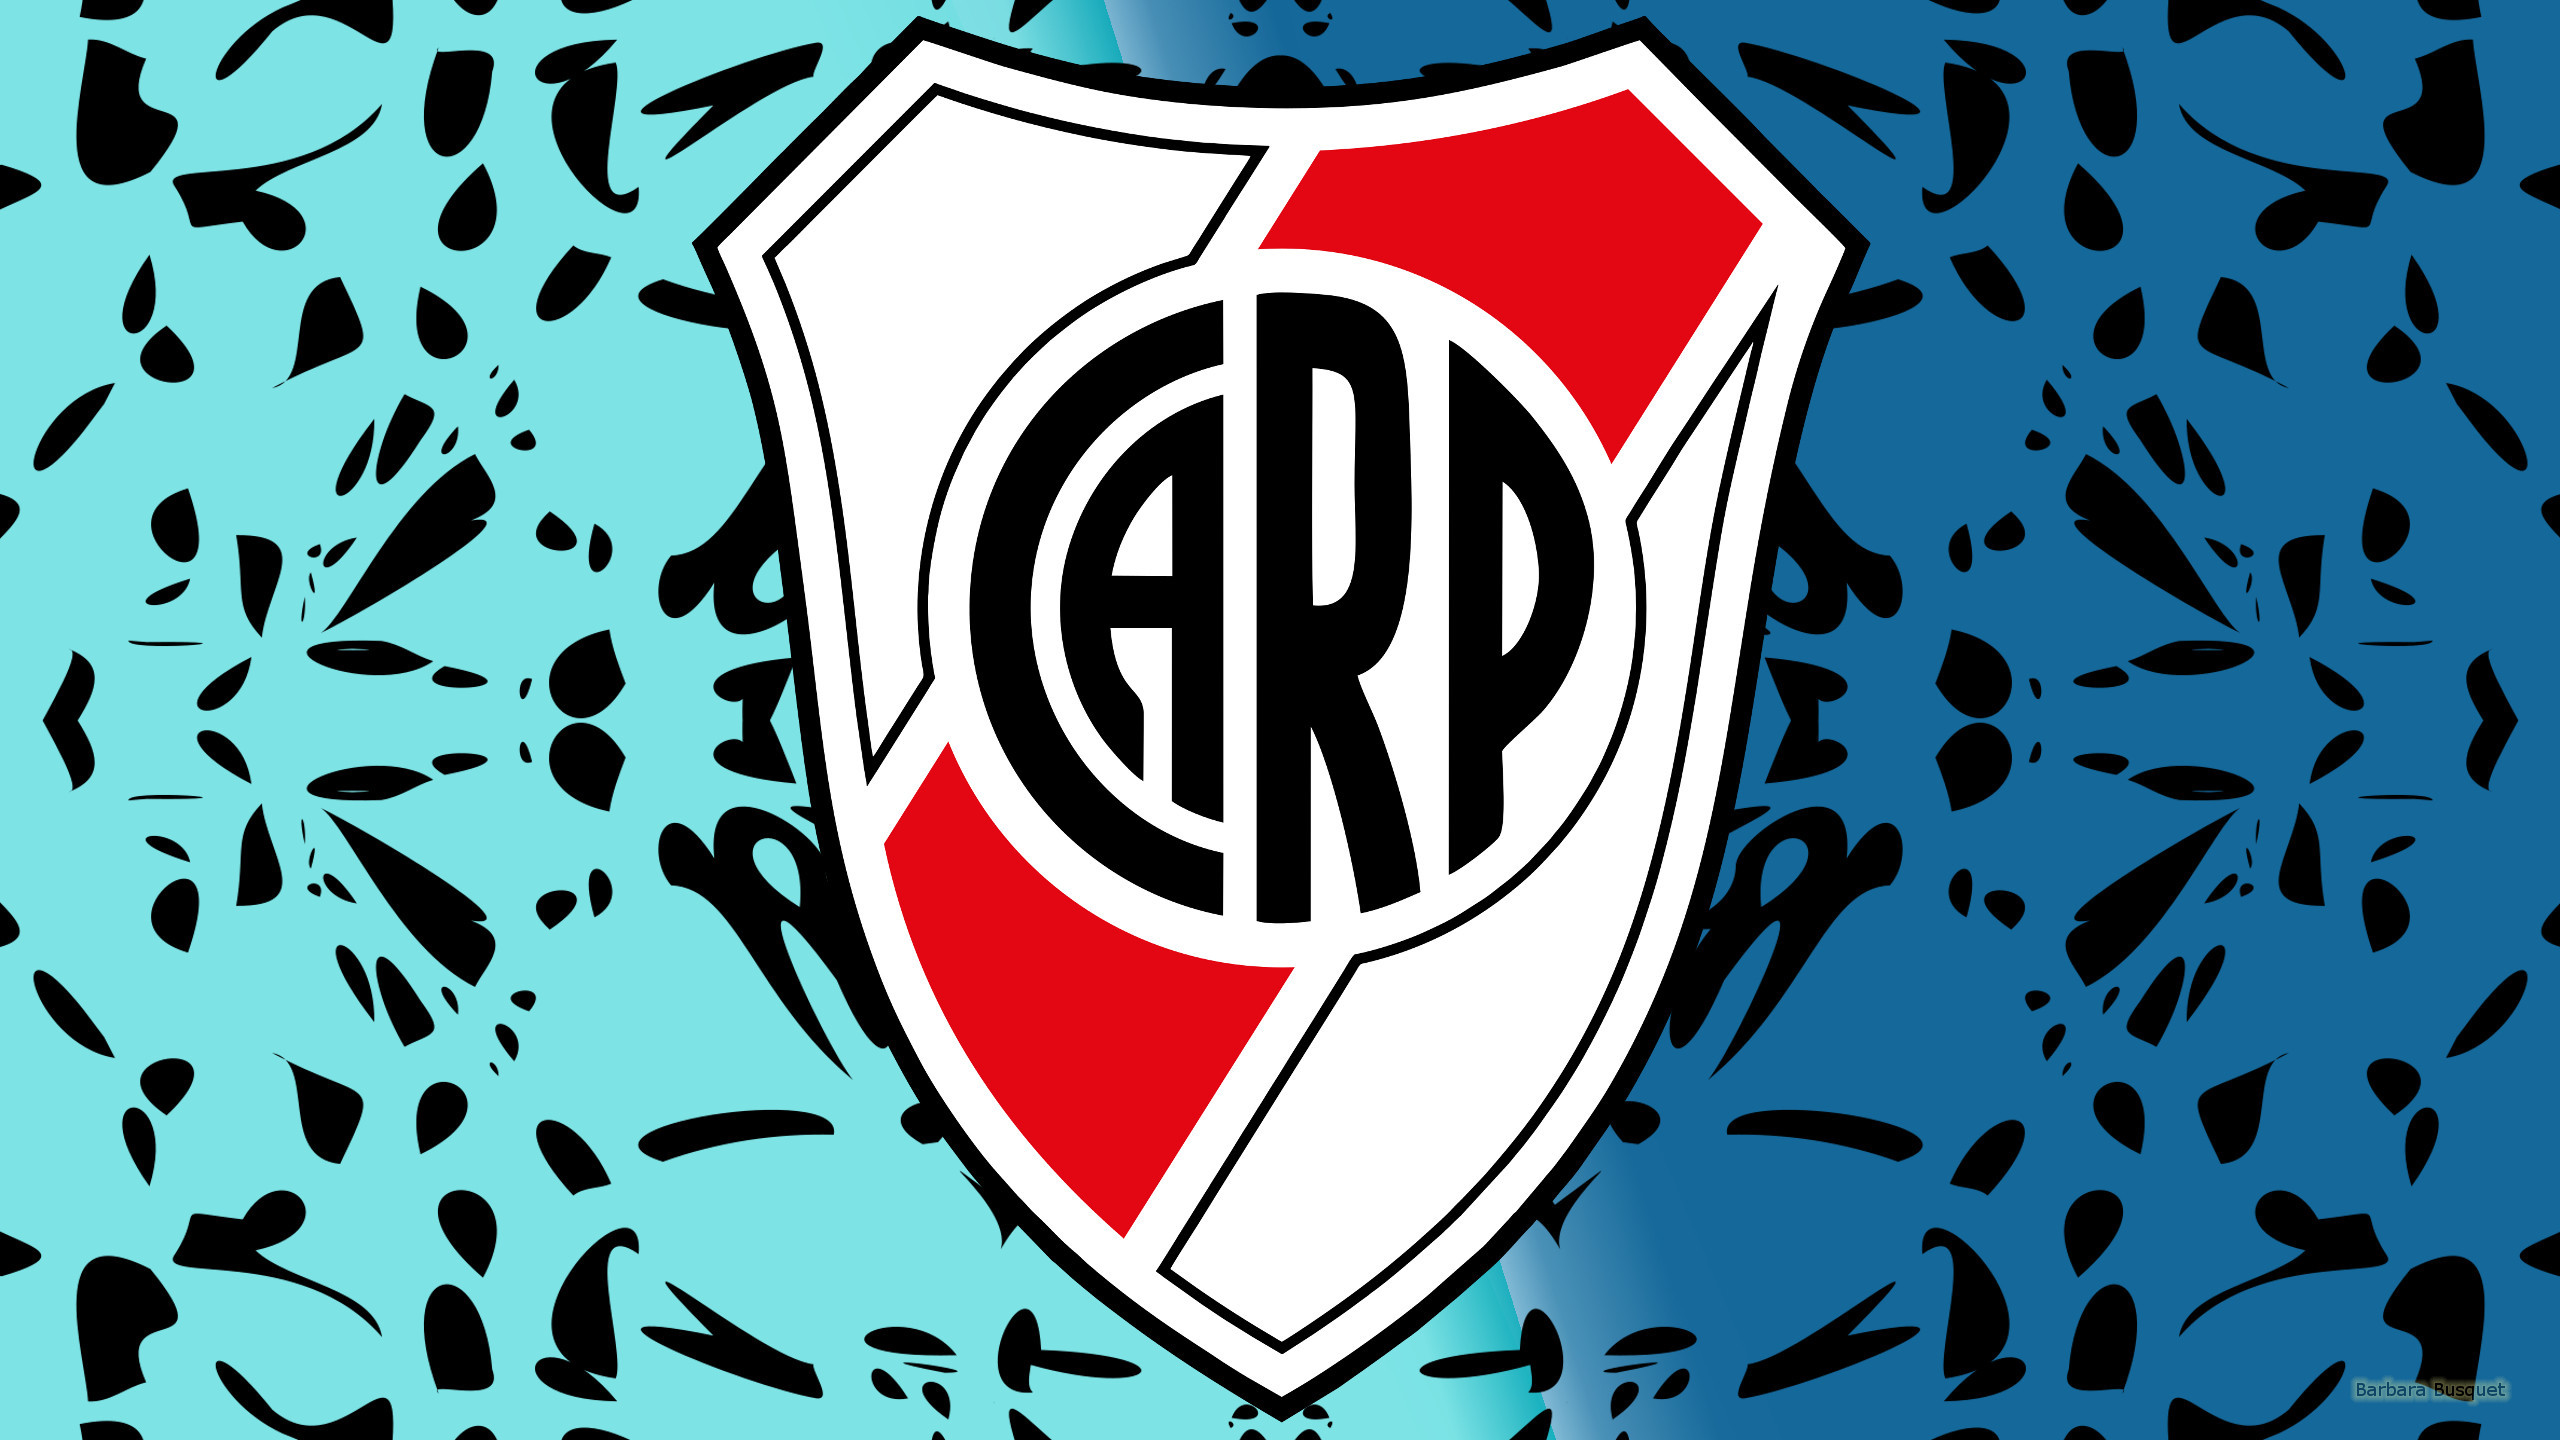 2560x1440 CA River Plate Buenos Aires wallpaper